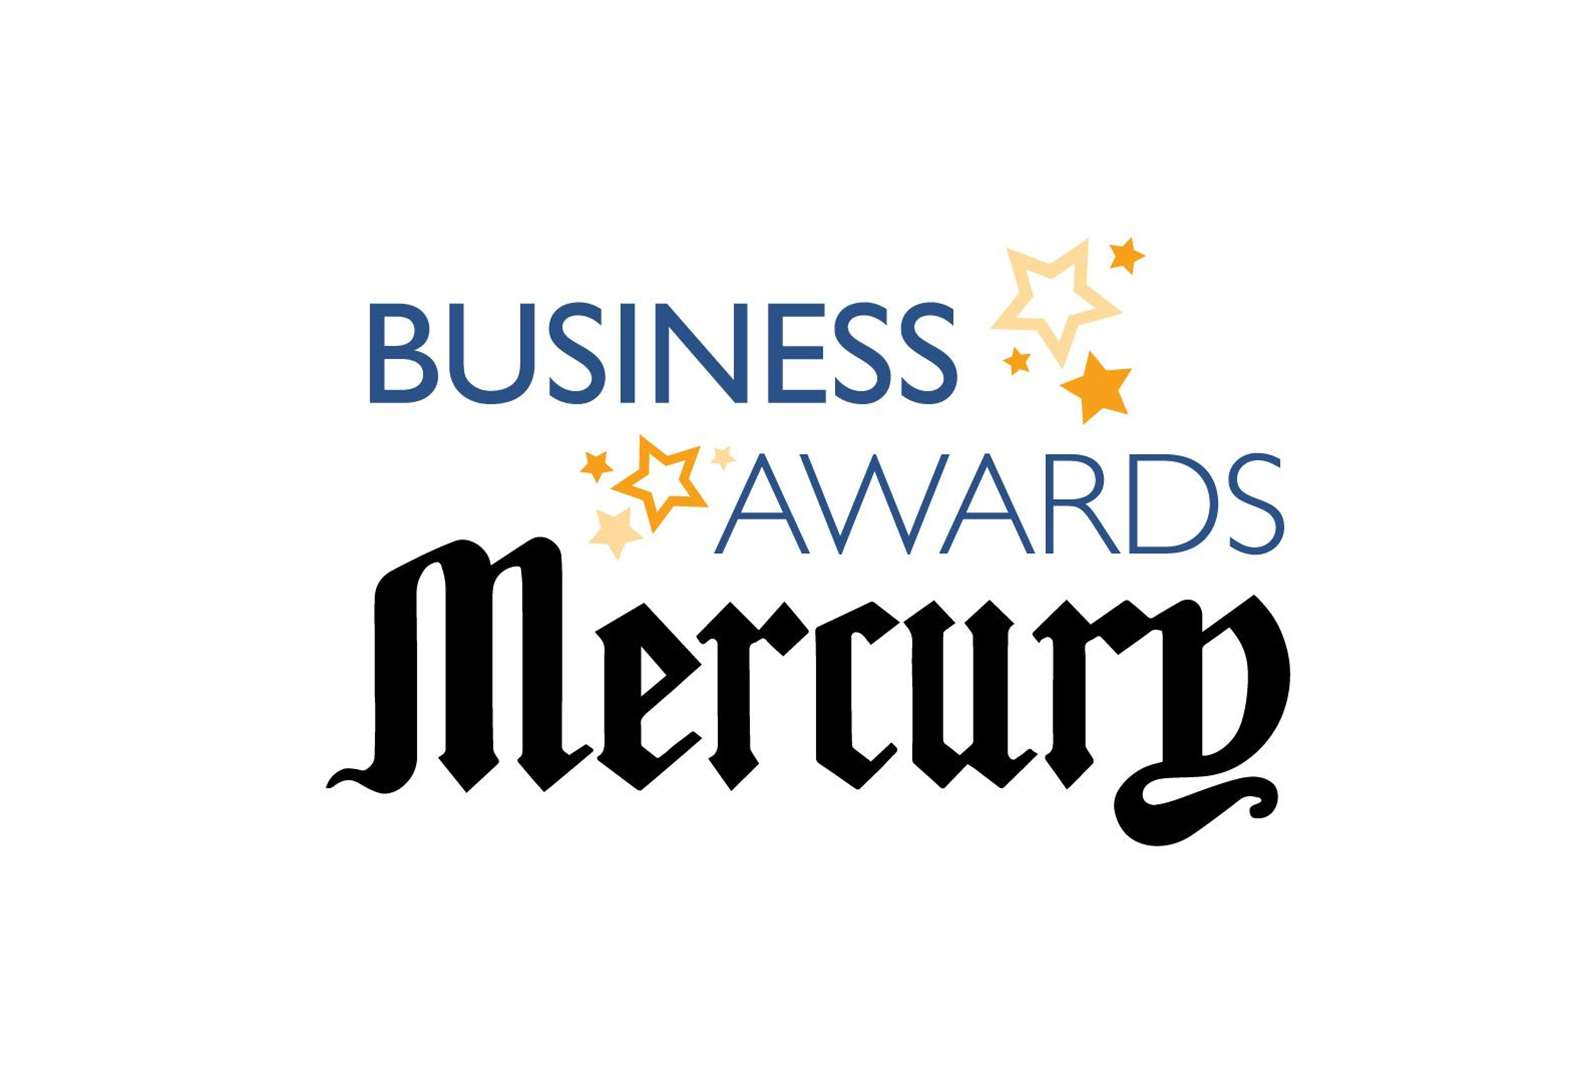 Are you a finalist in the Mercury Business Awards 2018?